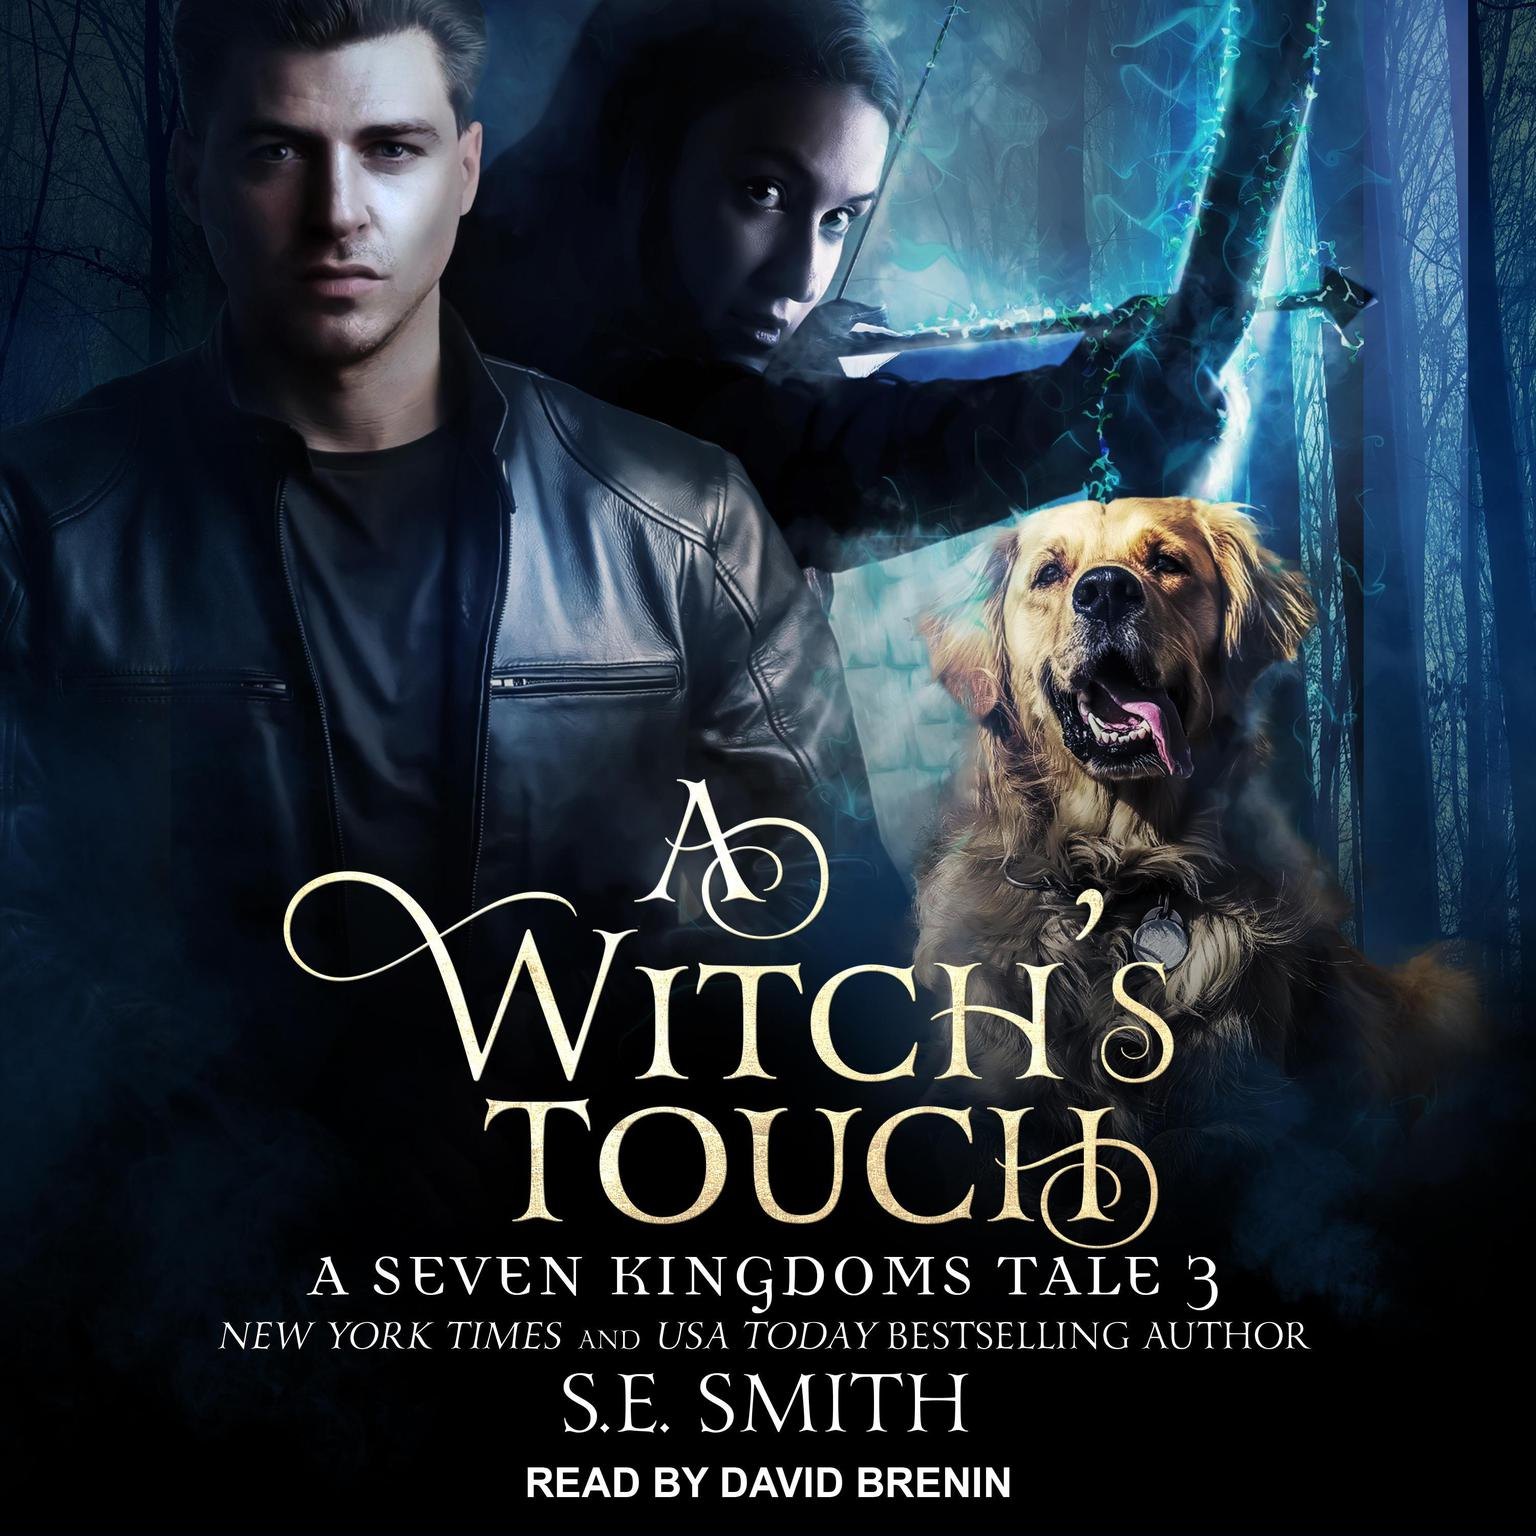 Printable A Witch's Touch: A Seven Kingdoms Tale 3 Audiobook Cover Art